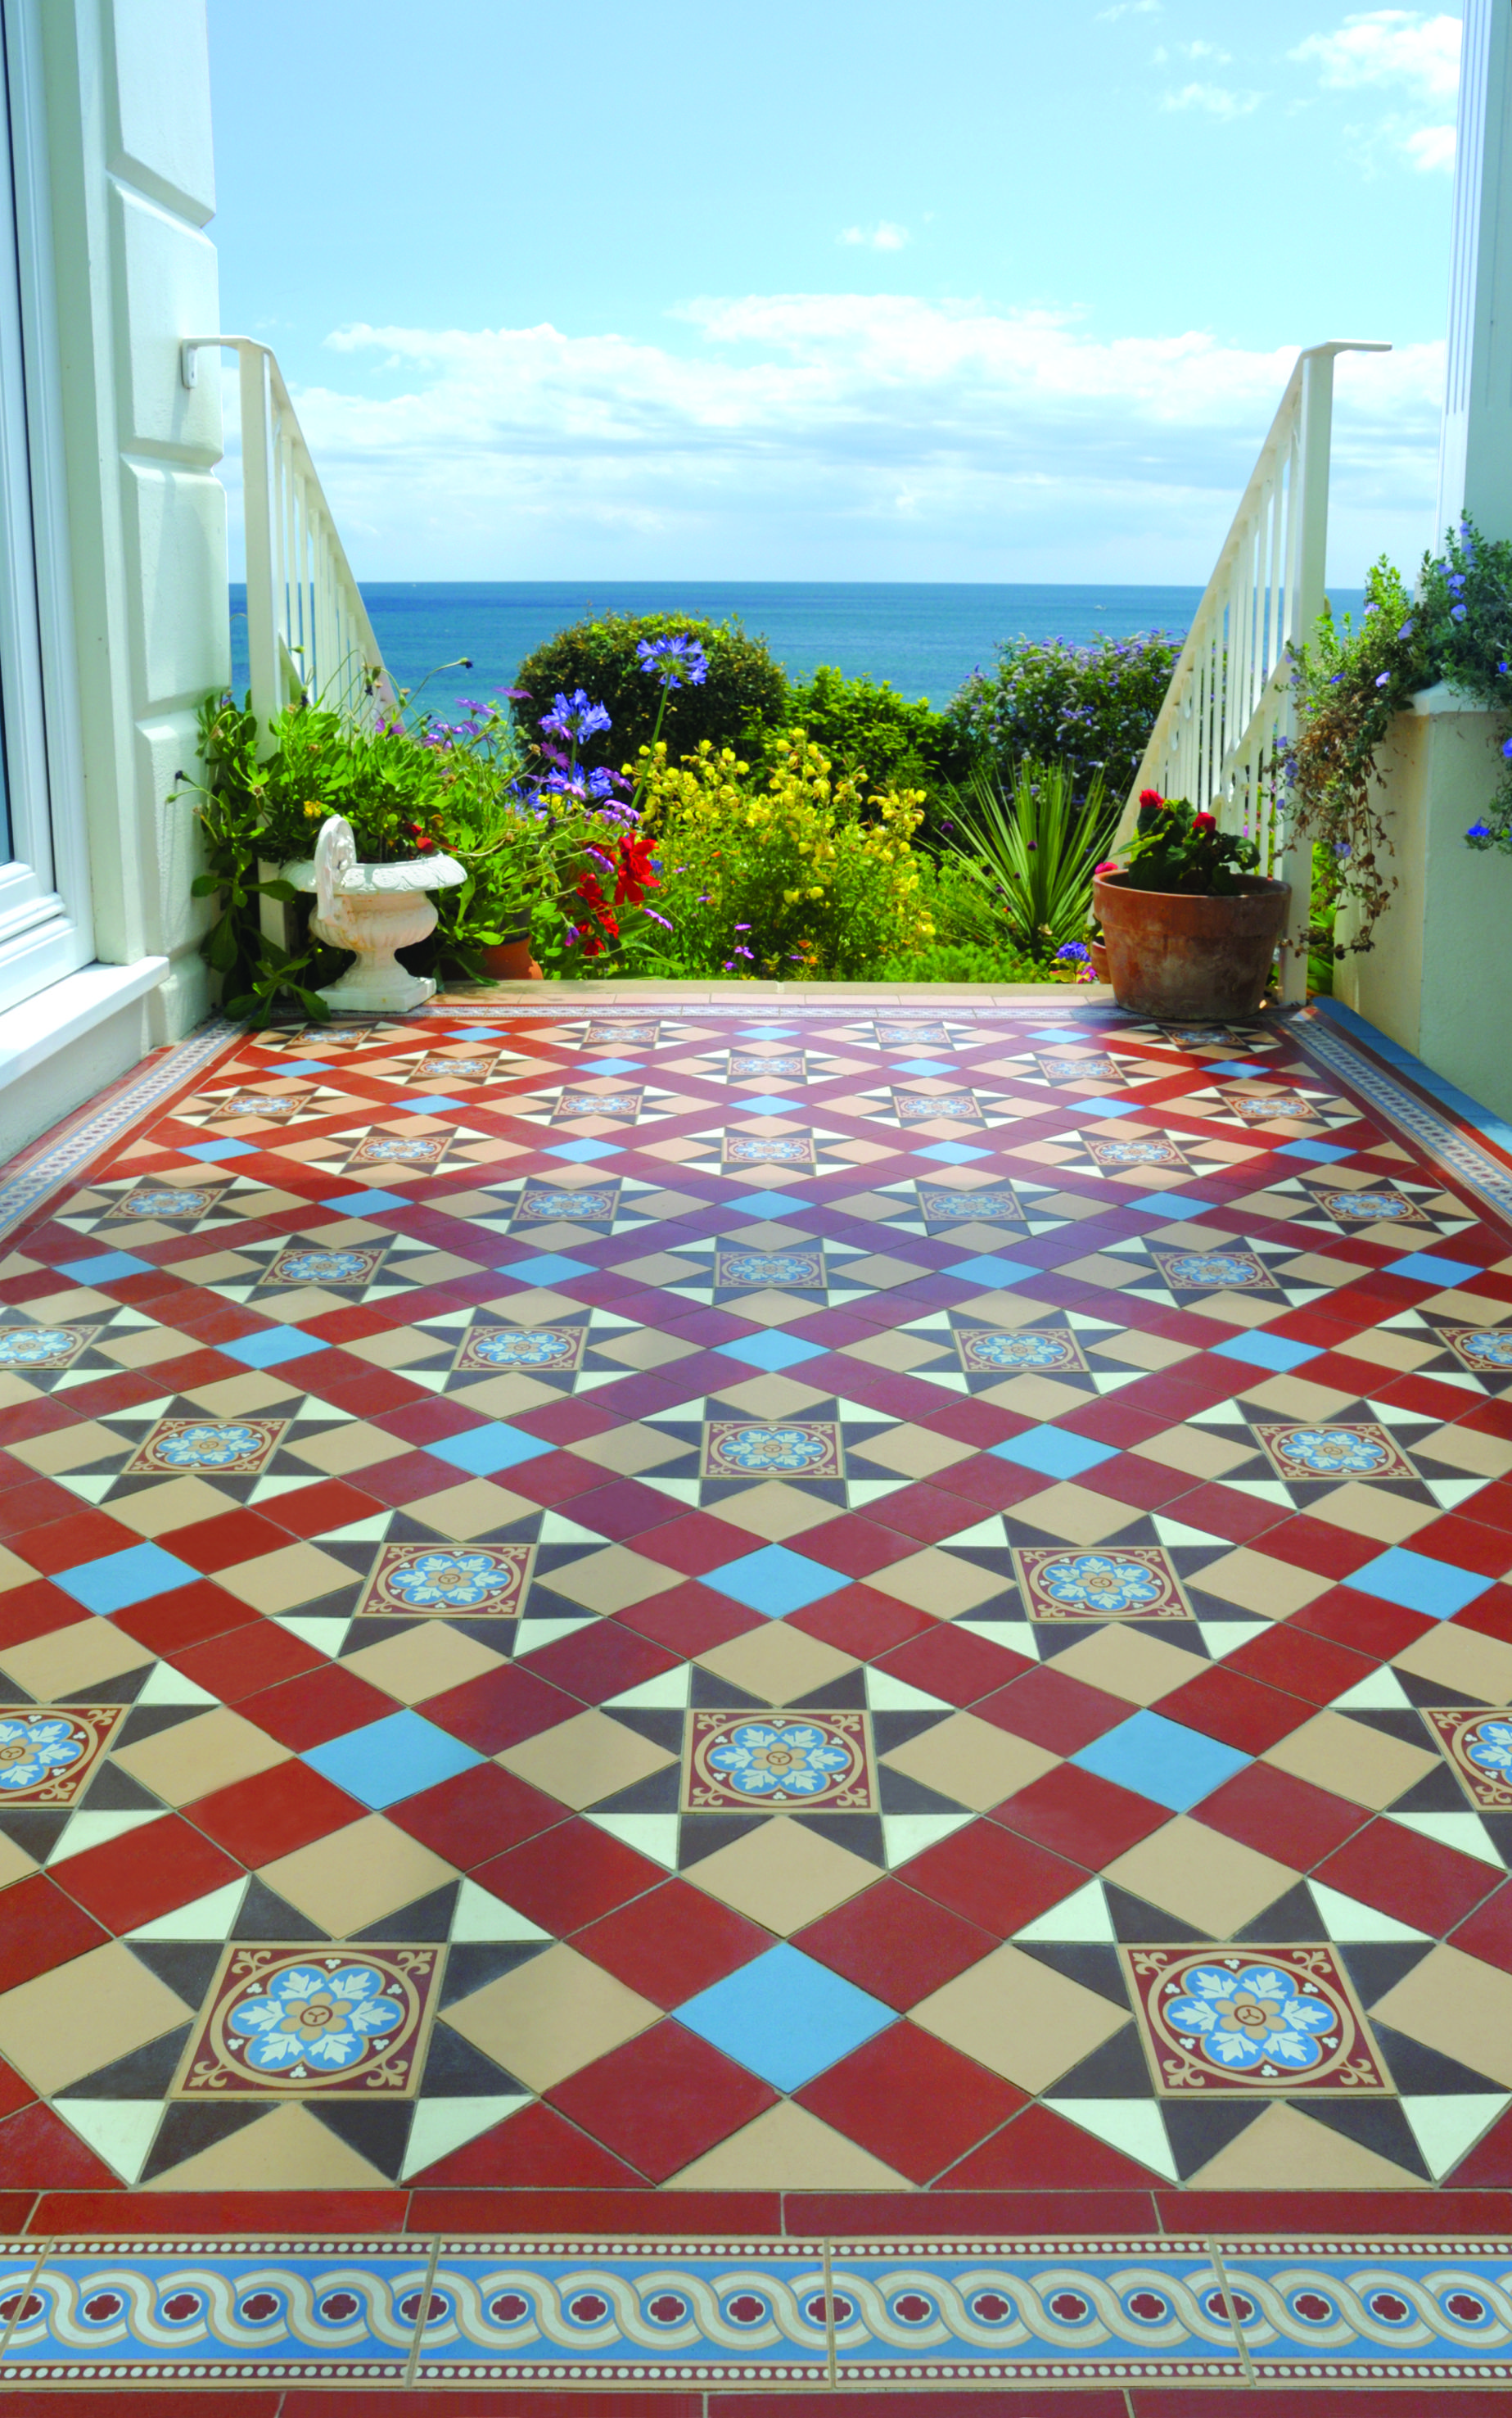 Victorian Floor Tiles Patio tiles, Style tile, Floor